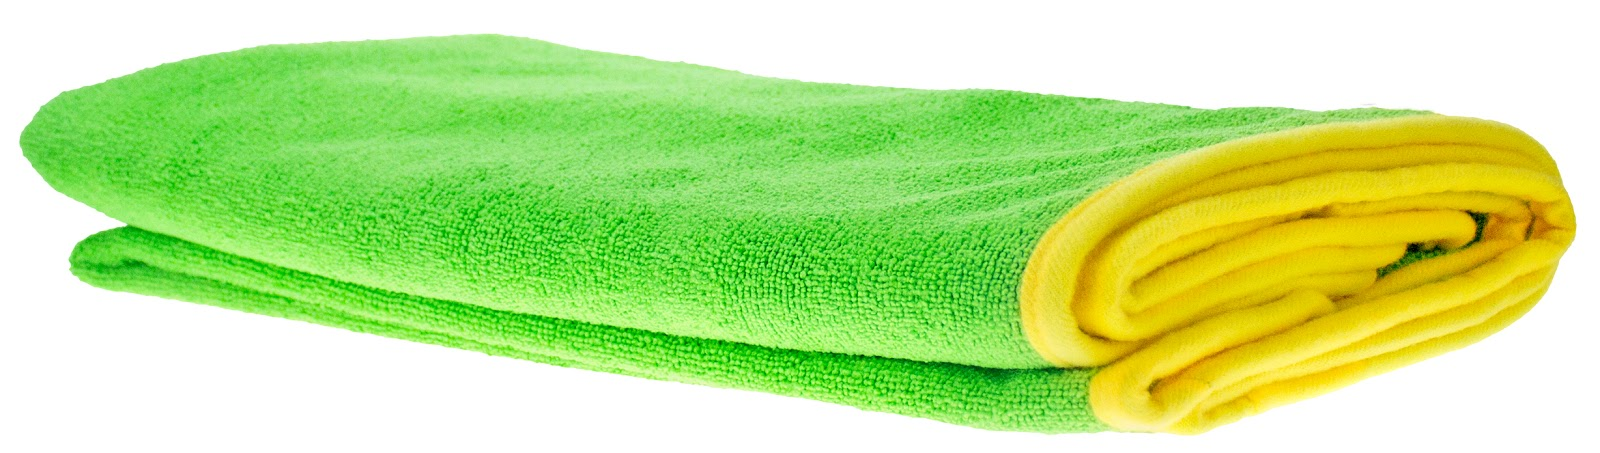 towel for kids bath kids towel rebecca lange norwex independent sales consultant is for